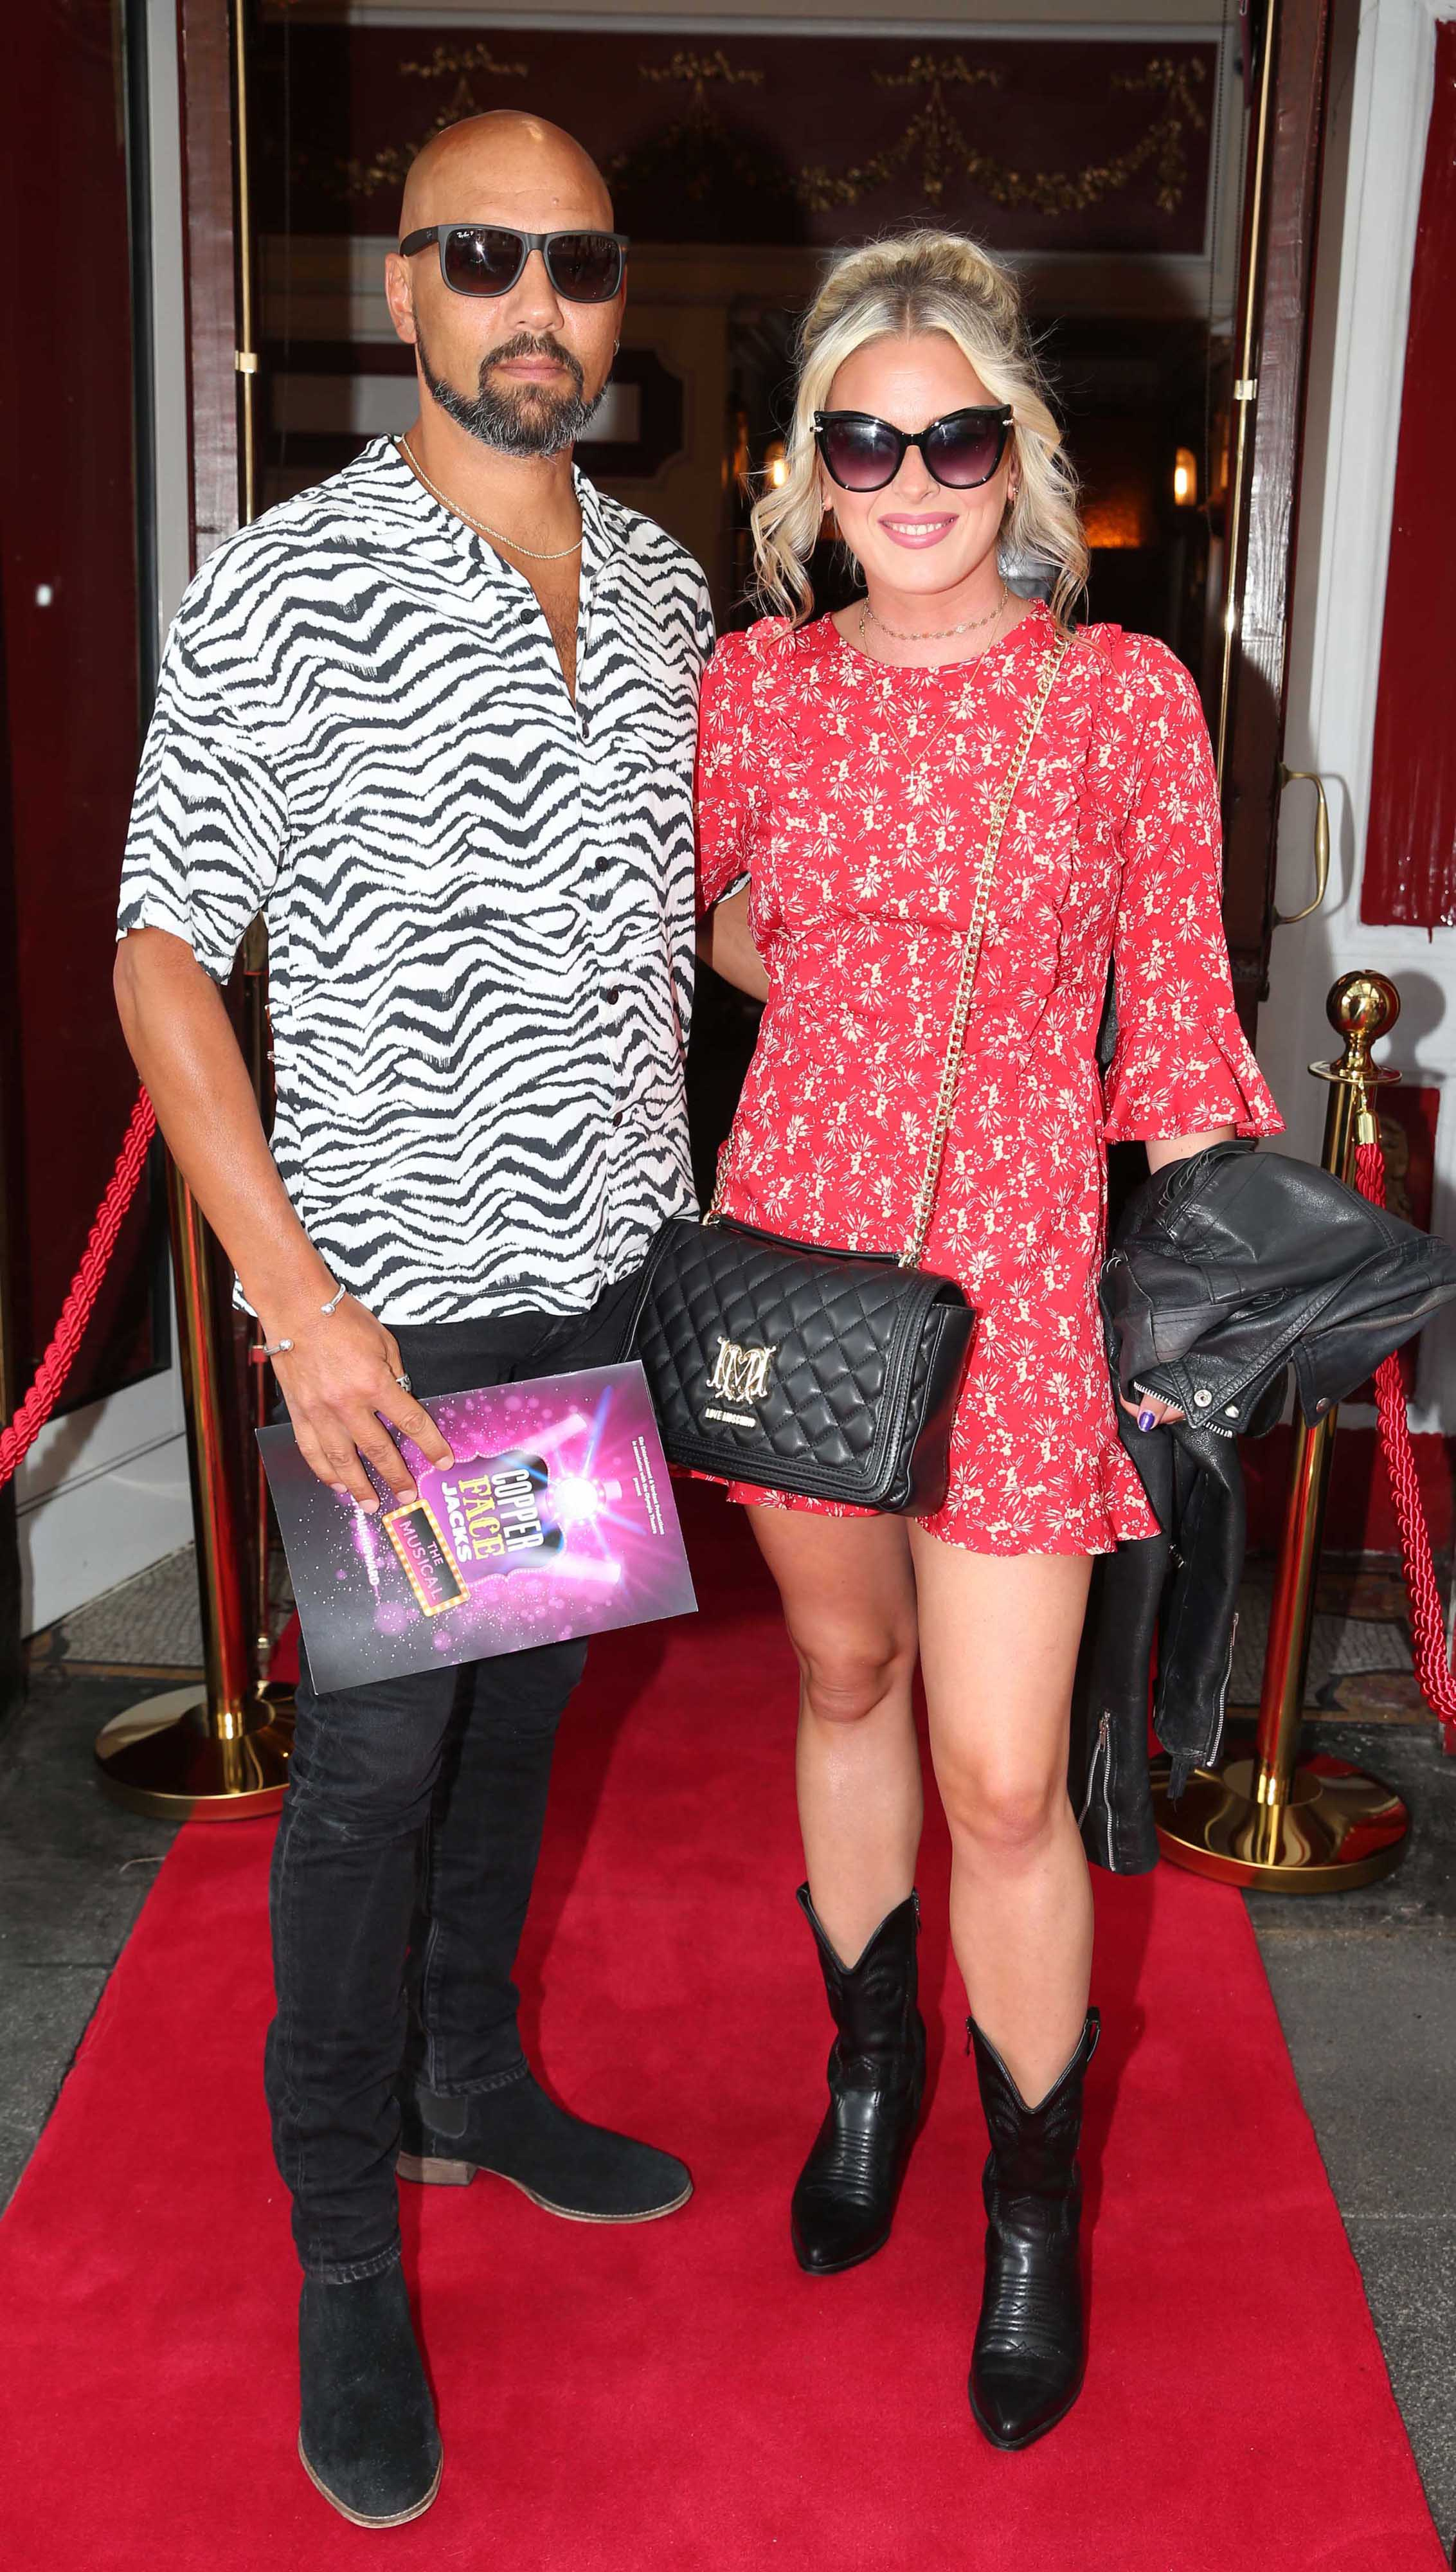 Daryn Crosbie and Linda Cowan at the opening night of  Copper Face Jacks The Musical at  the Olympia Theatre which  runs until the 10th August.Photo: Leon Farrell/Photocall Ireland.